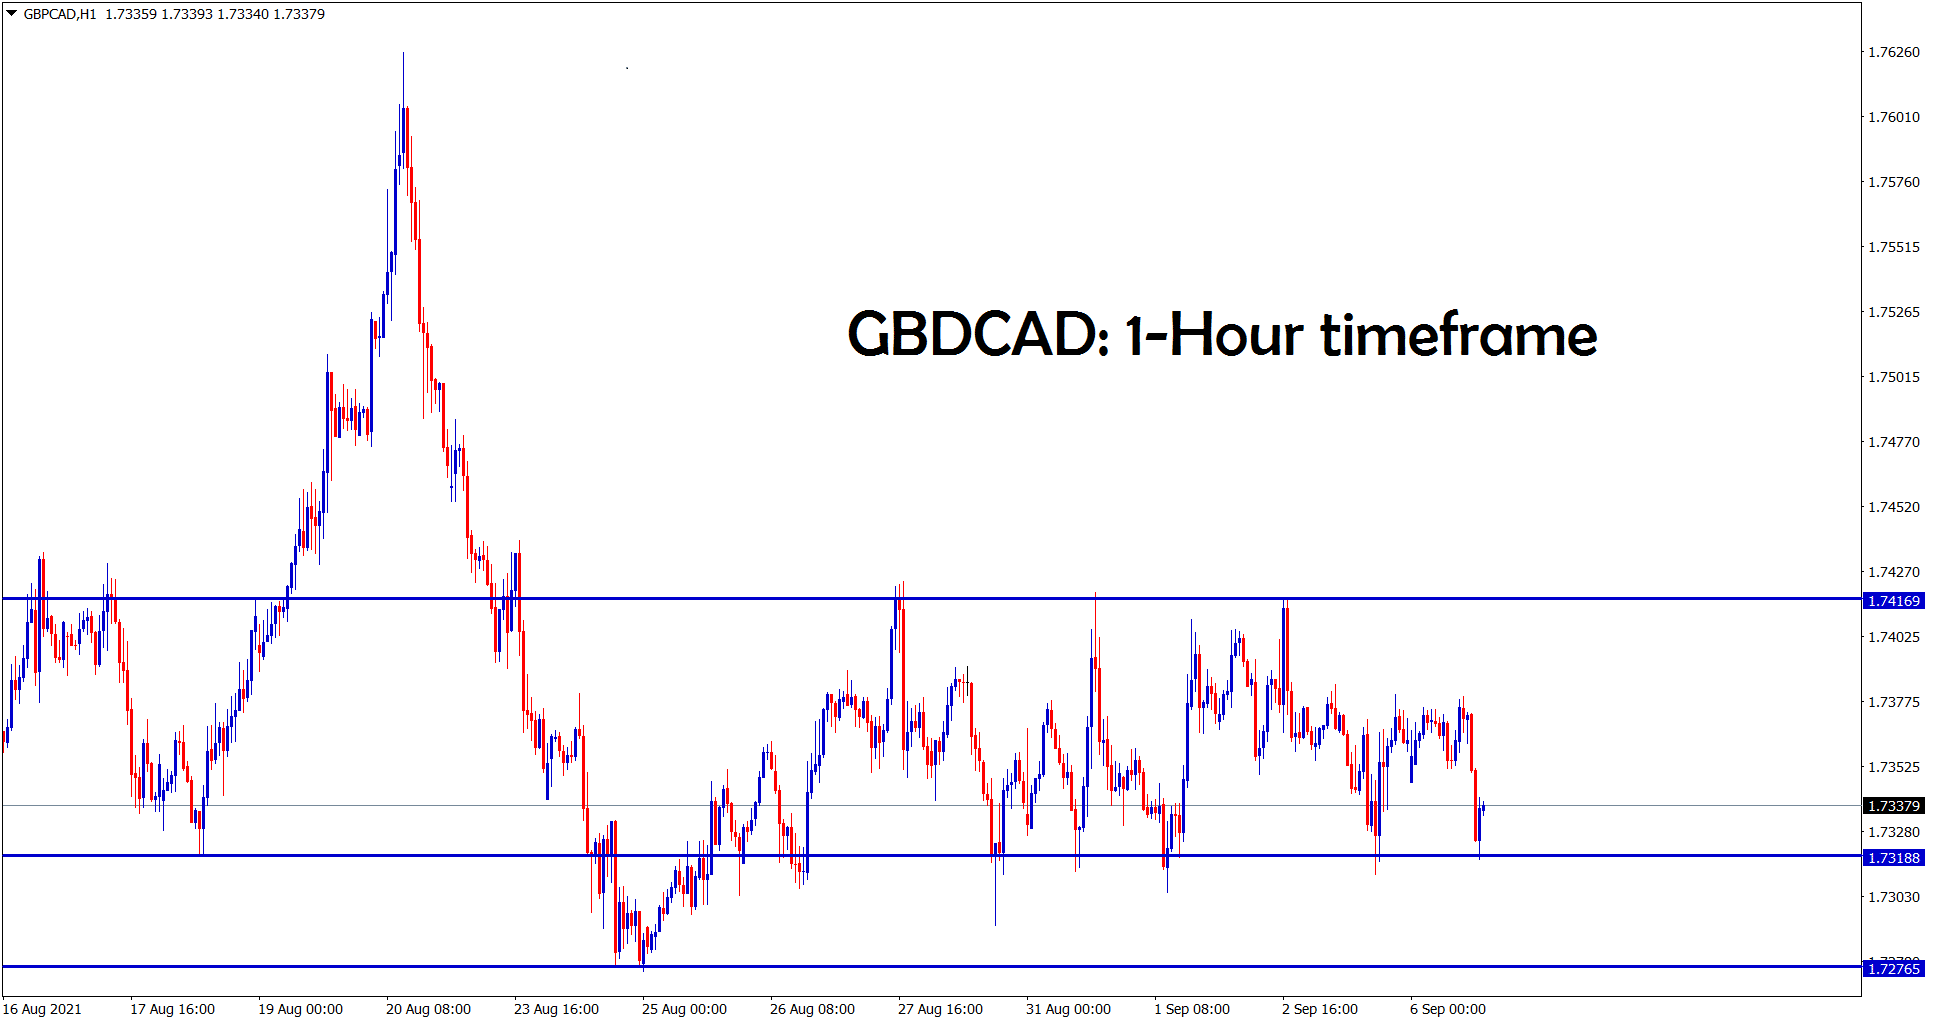 GBPCAD is ranging up and down between the SR levels